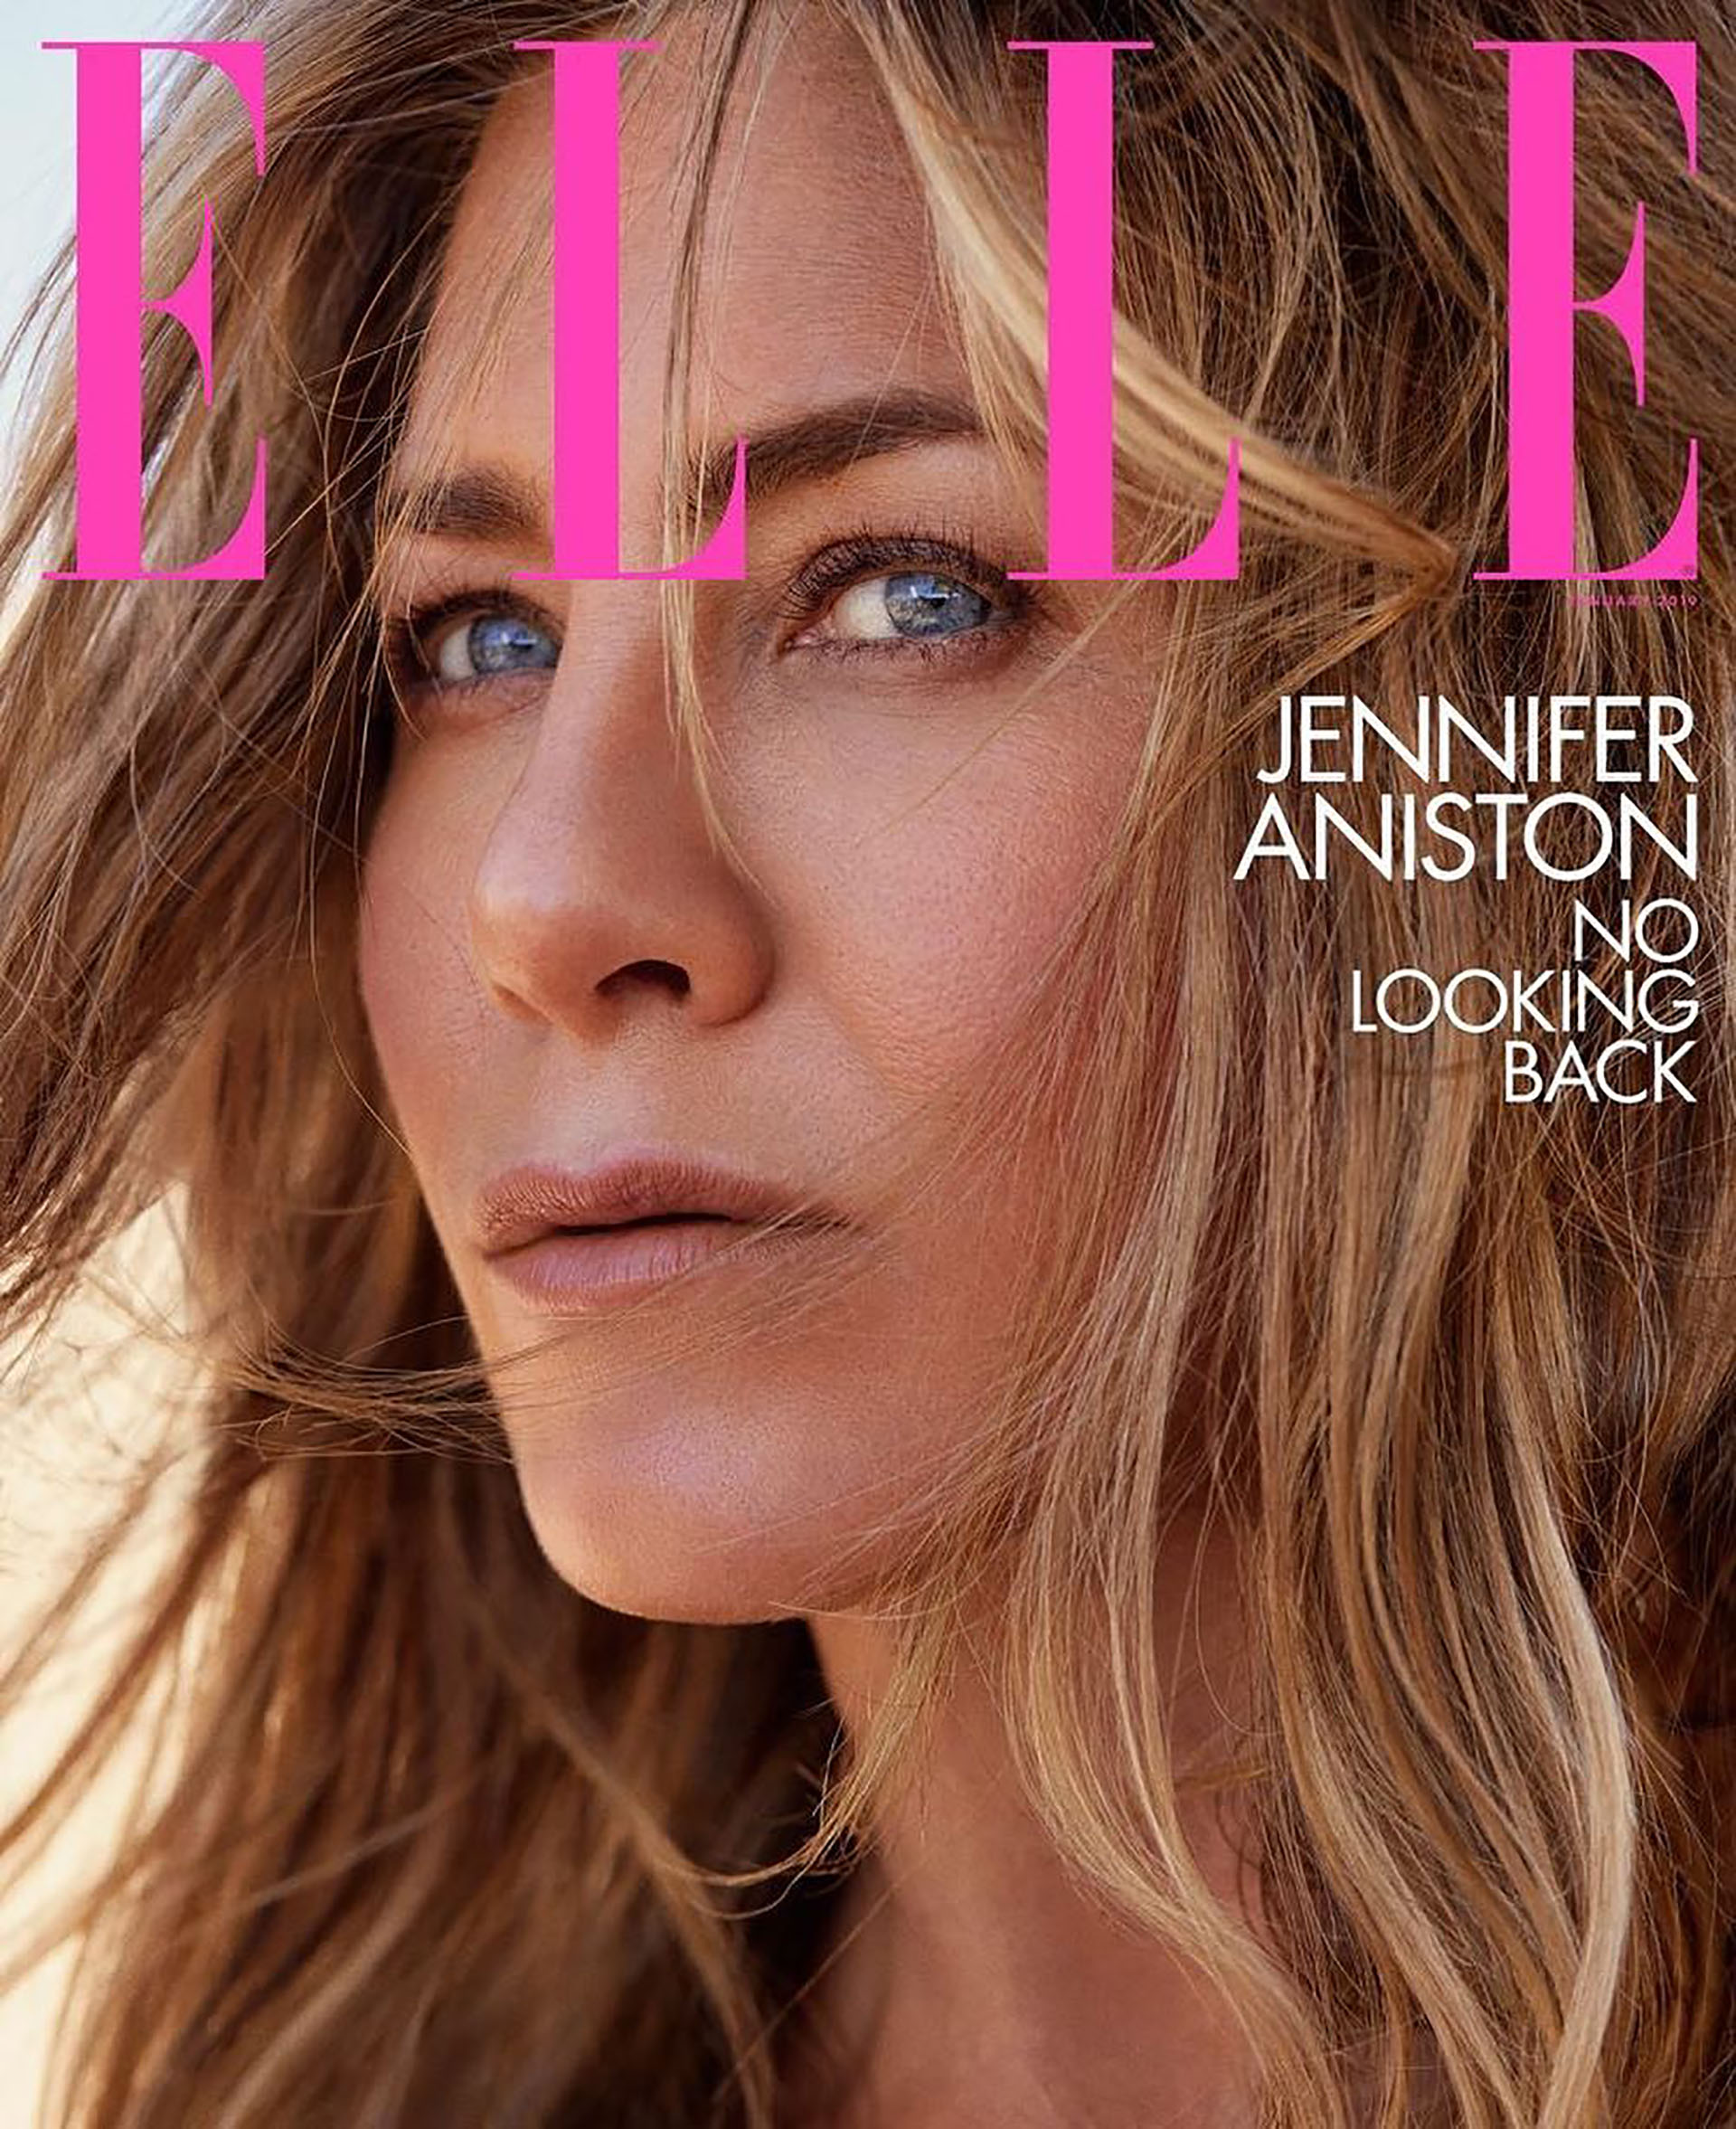 Jennifer Aniston sigue siendo una de las más bellas y queridas de Hollywood